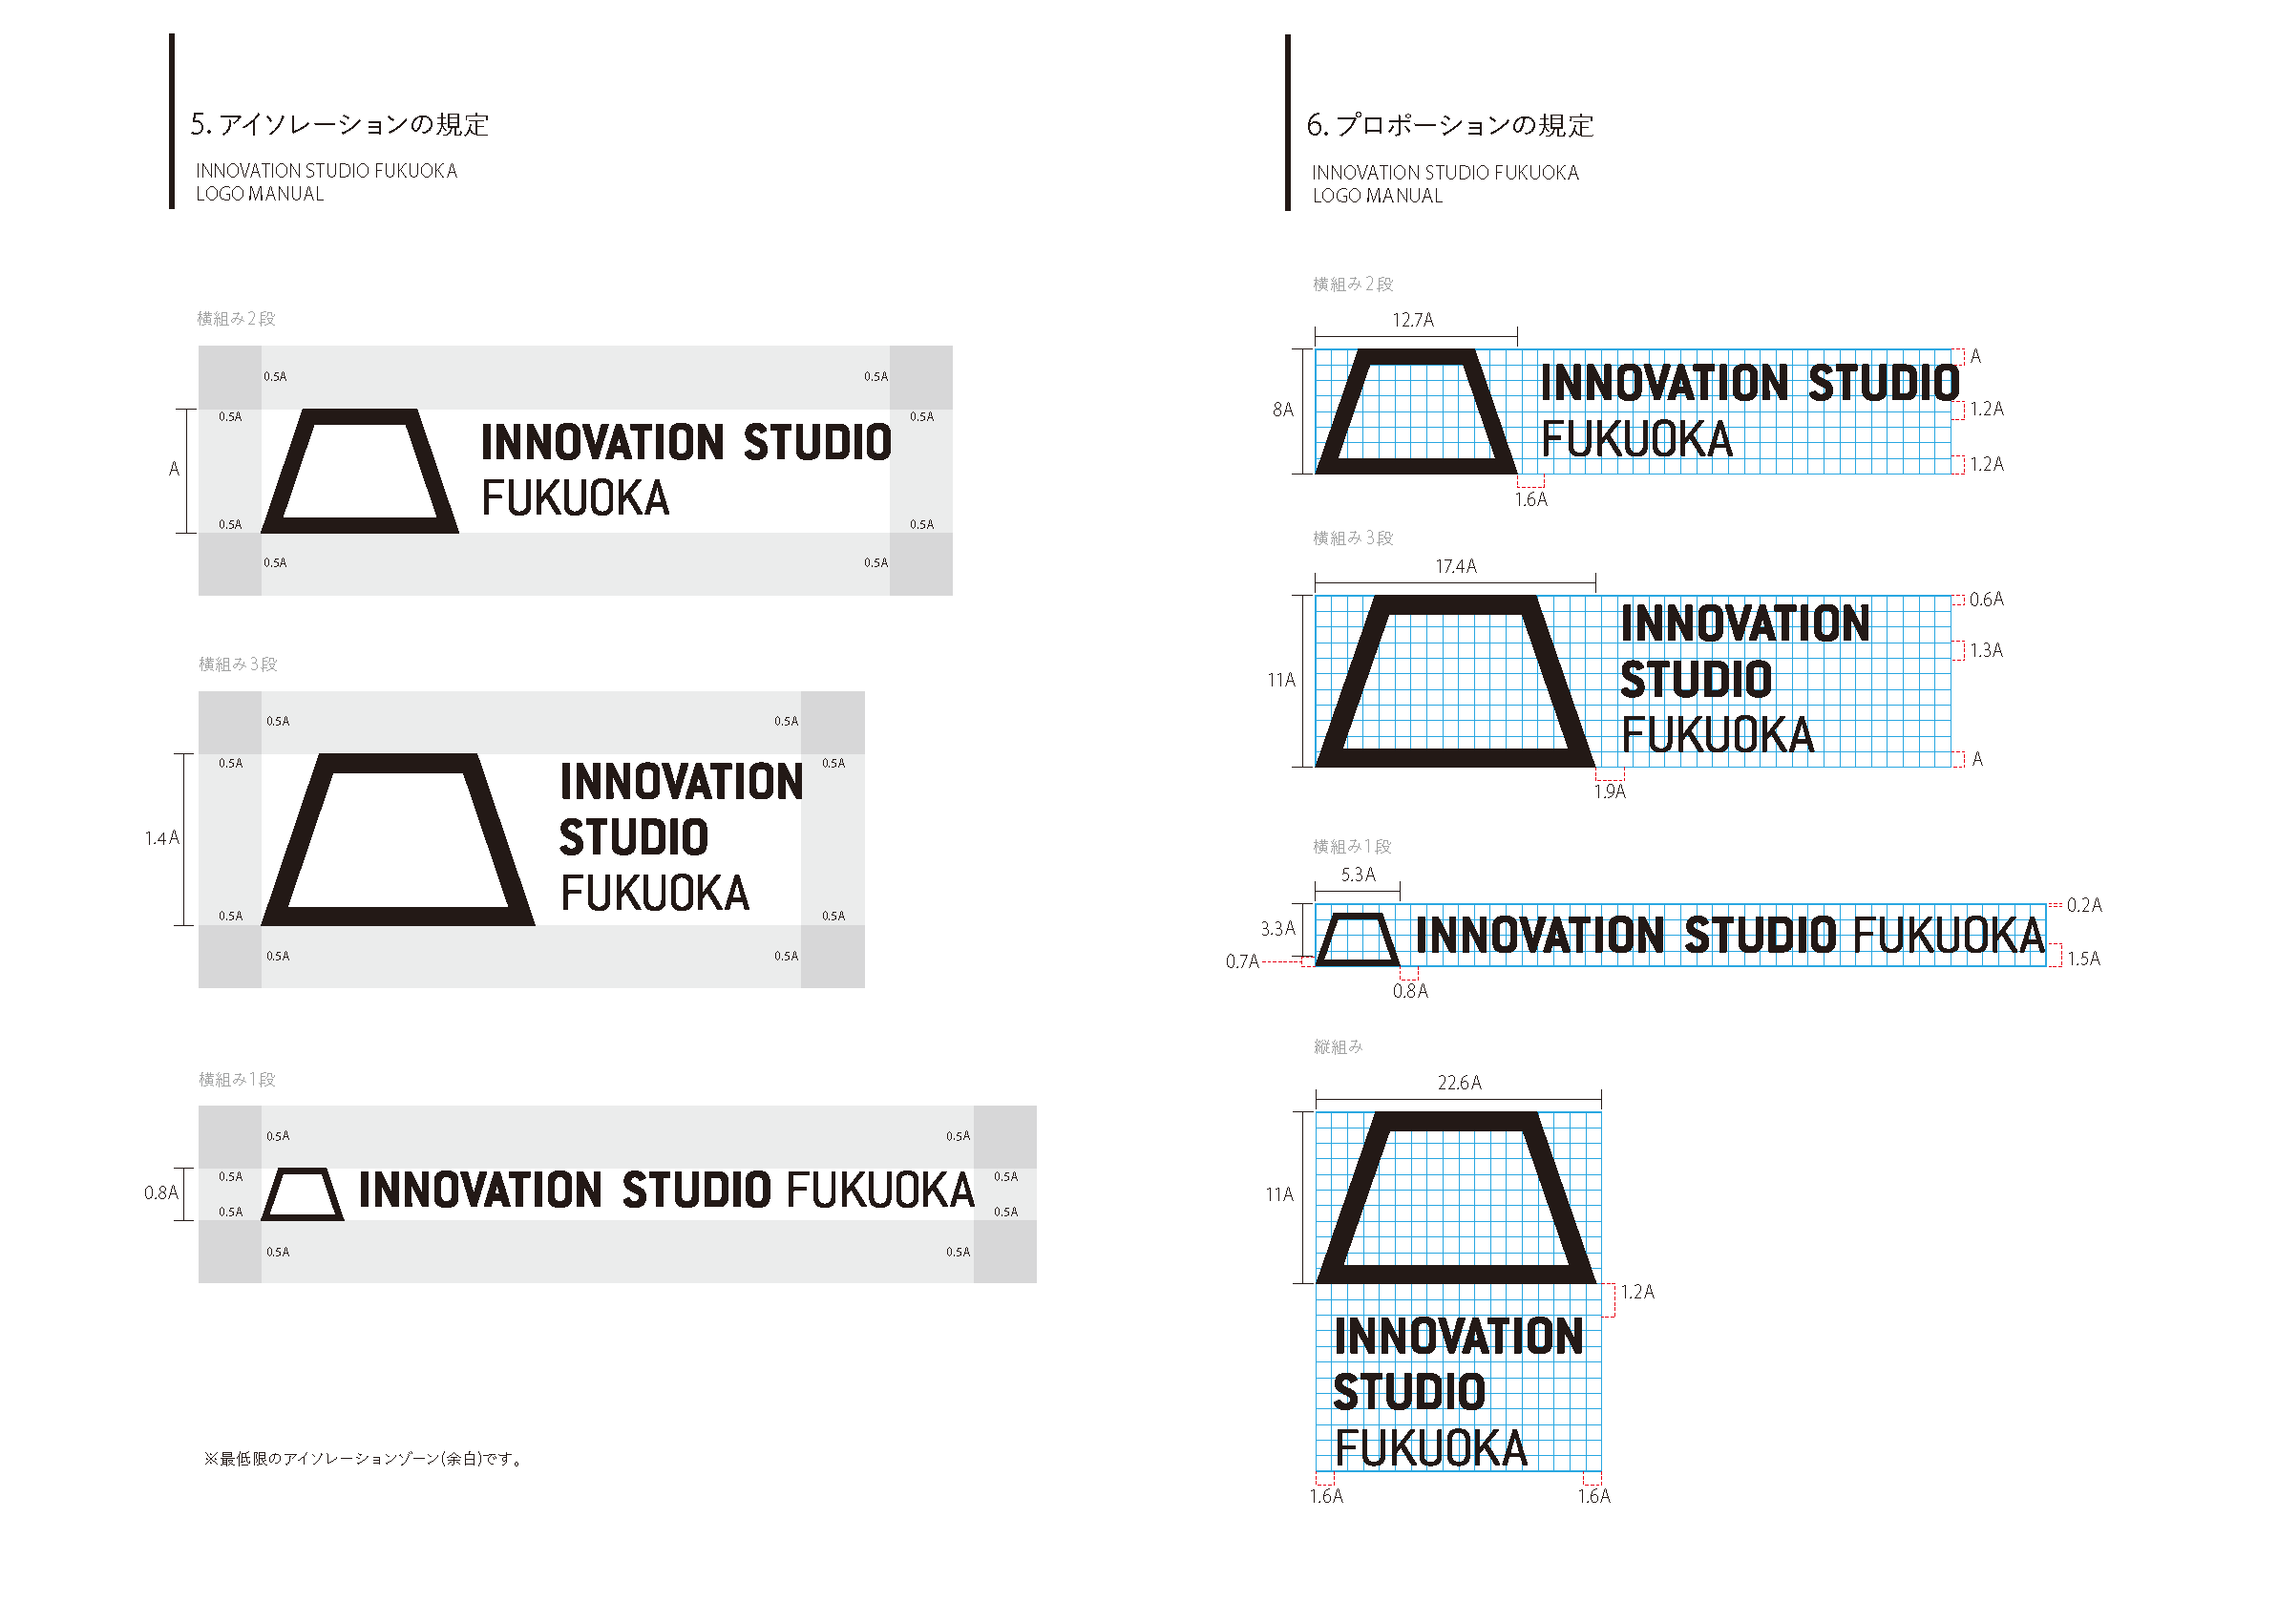 Innvation_studio